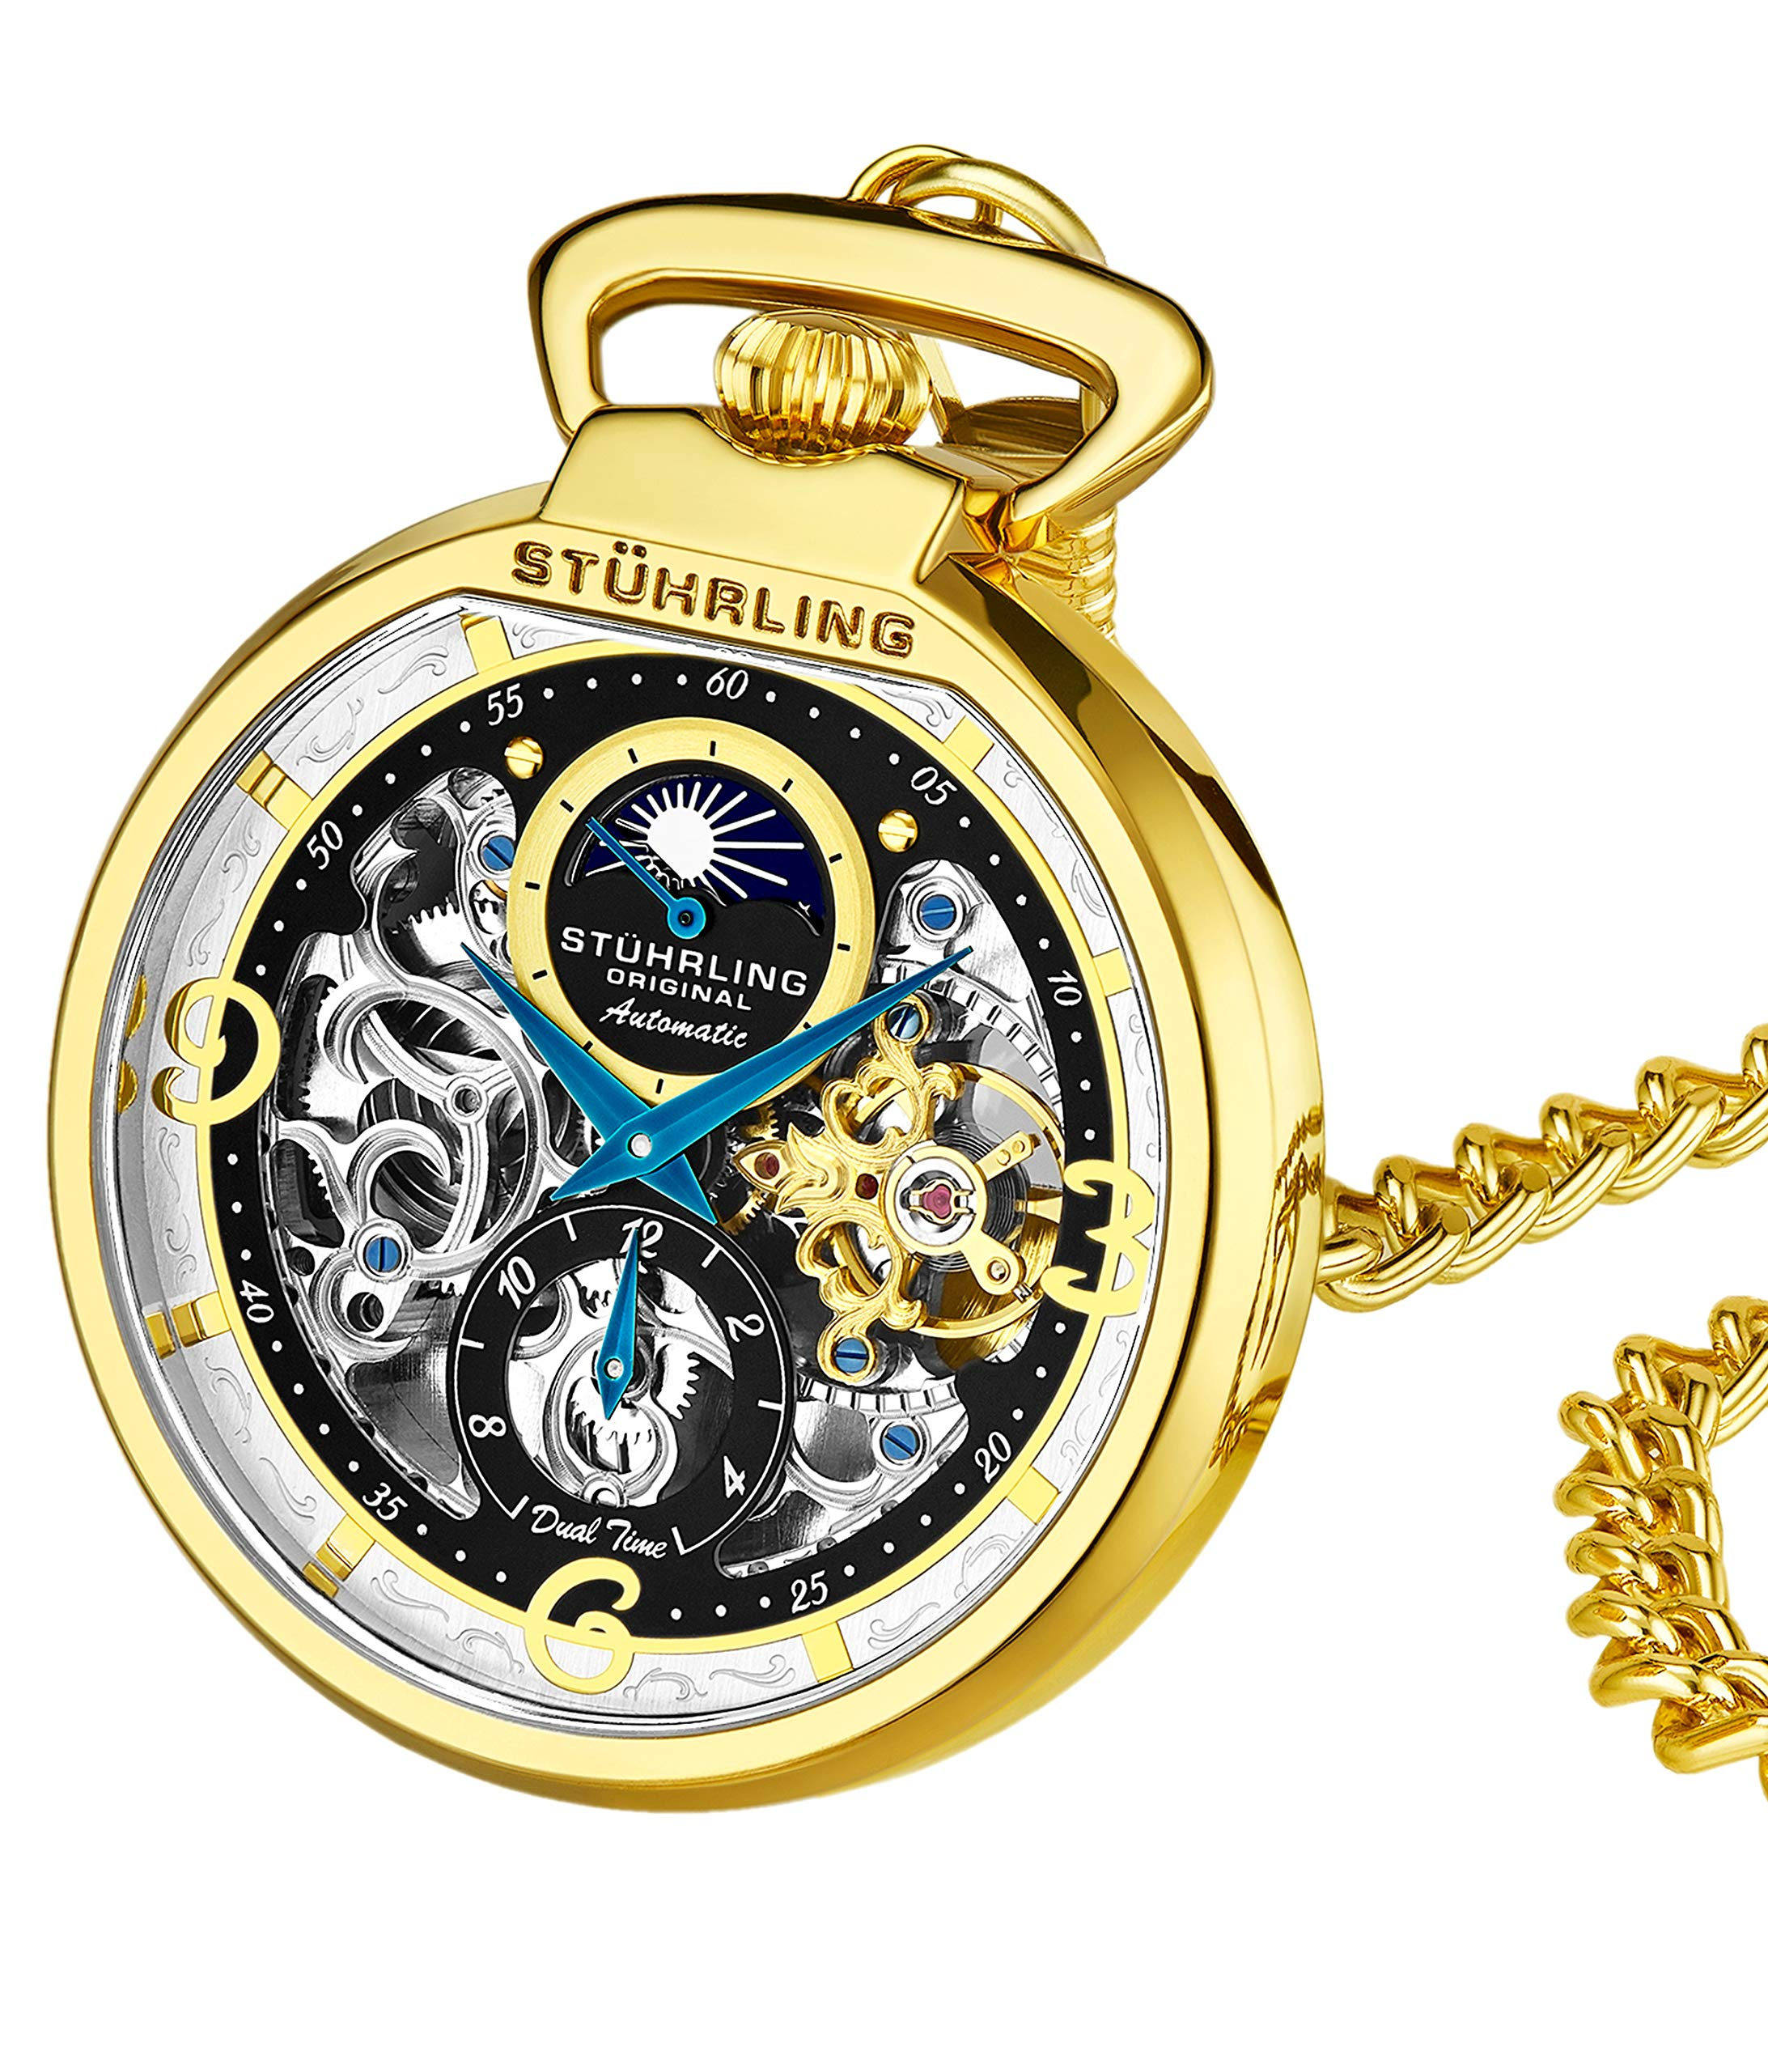 Stuhrling Orignal Mens Pocket Watch Automatic Watch Skeleton Watches for Men - Self Winding Gold Pocket Watch - Mechanical Watch with Belt Clip and Stainless Steel Chain -Dual Time AM/PM Subdial by Stuhrling Original